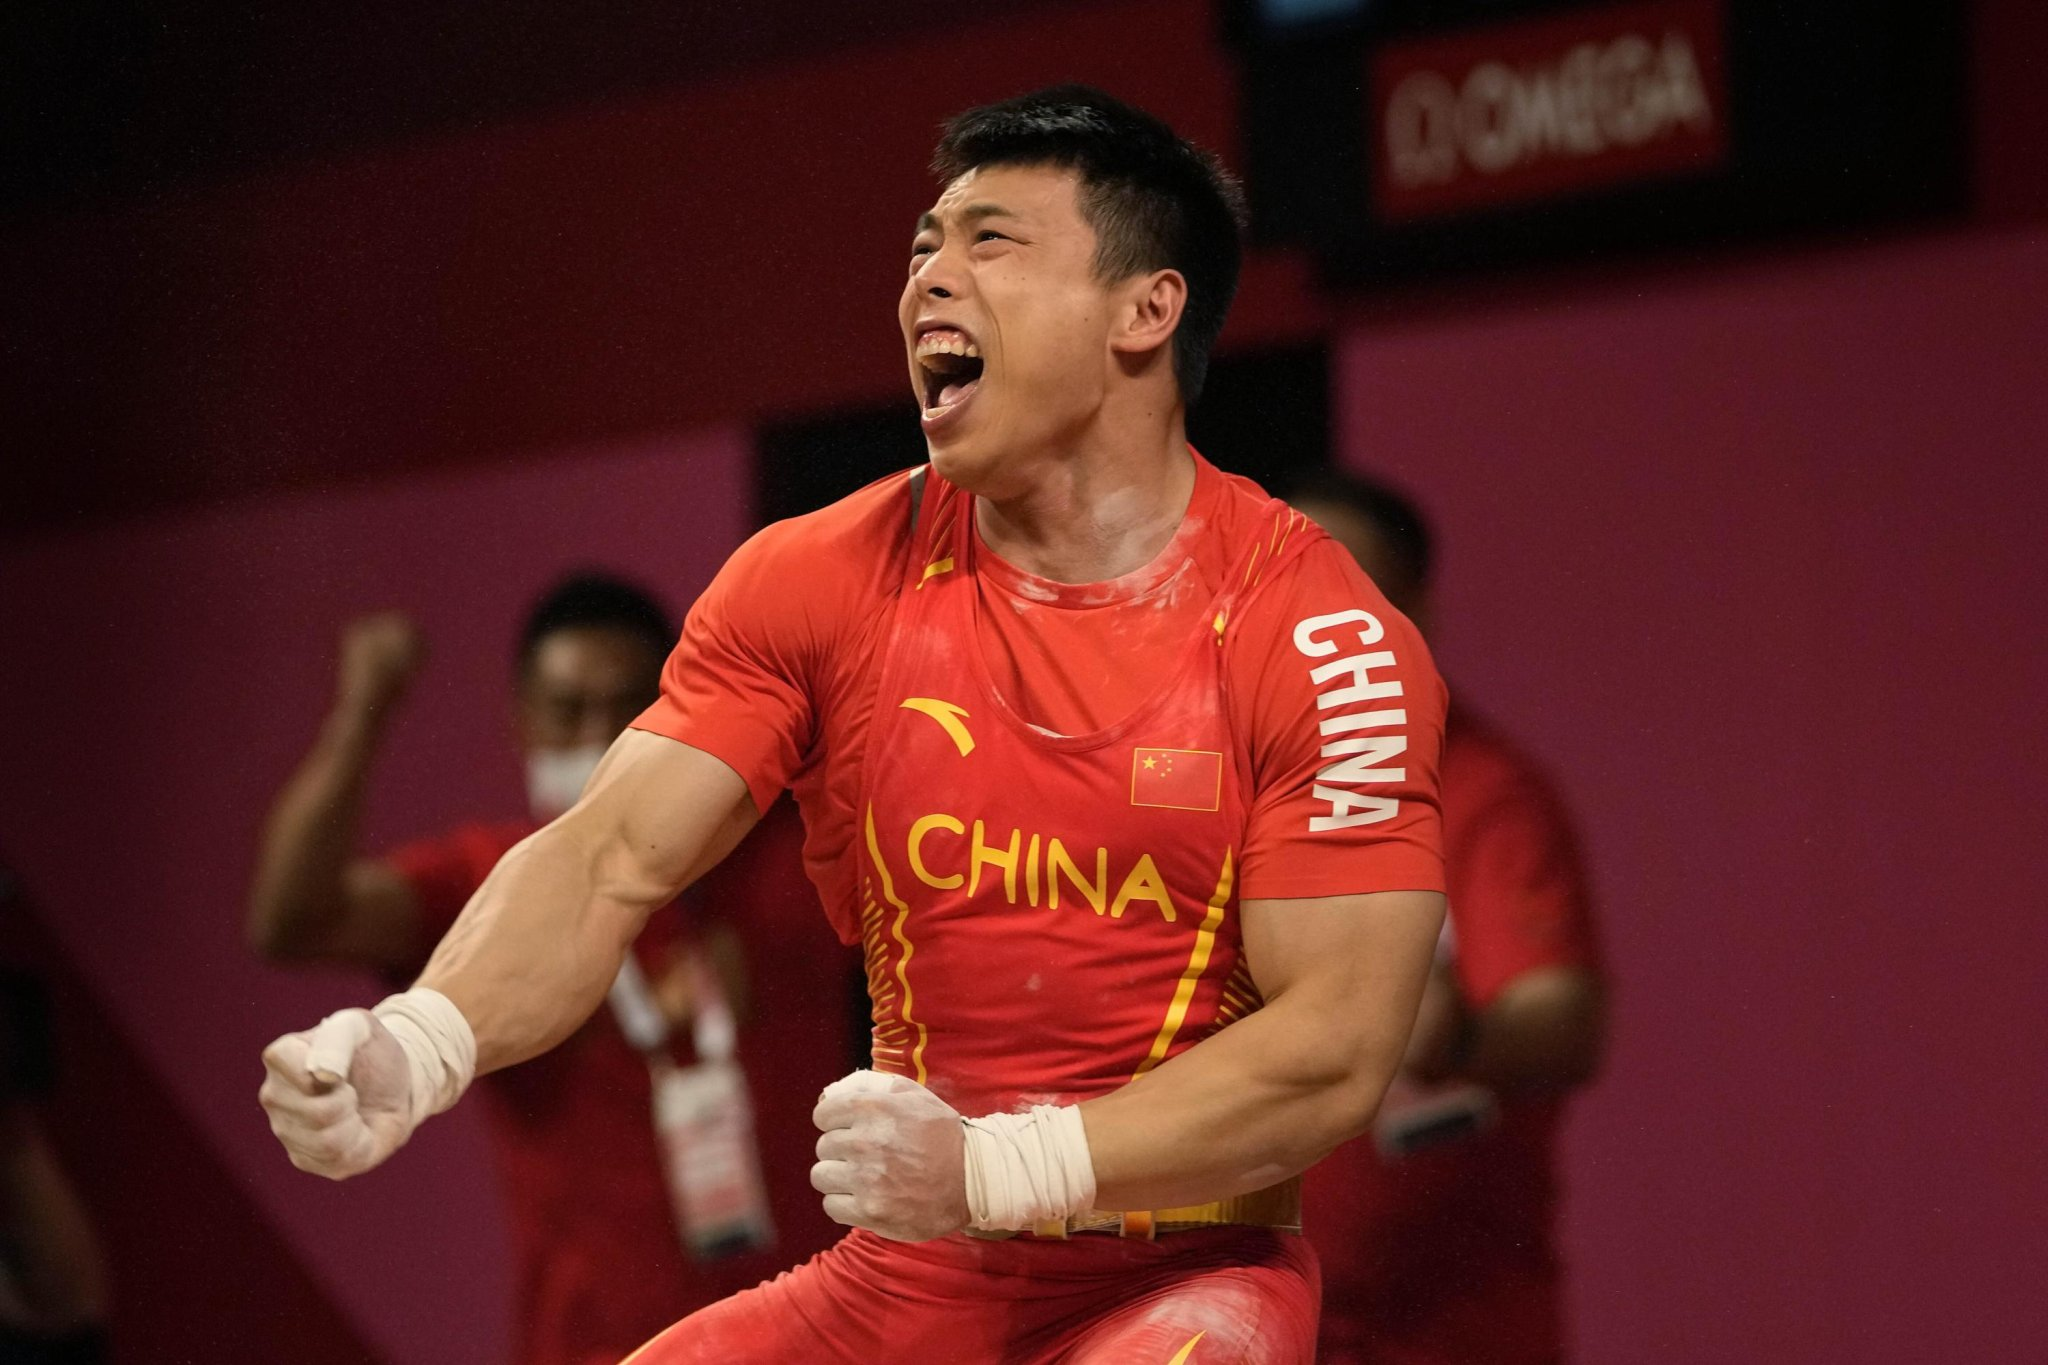 China keeps perfect record going in Olympic weightlifting